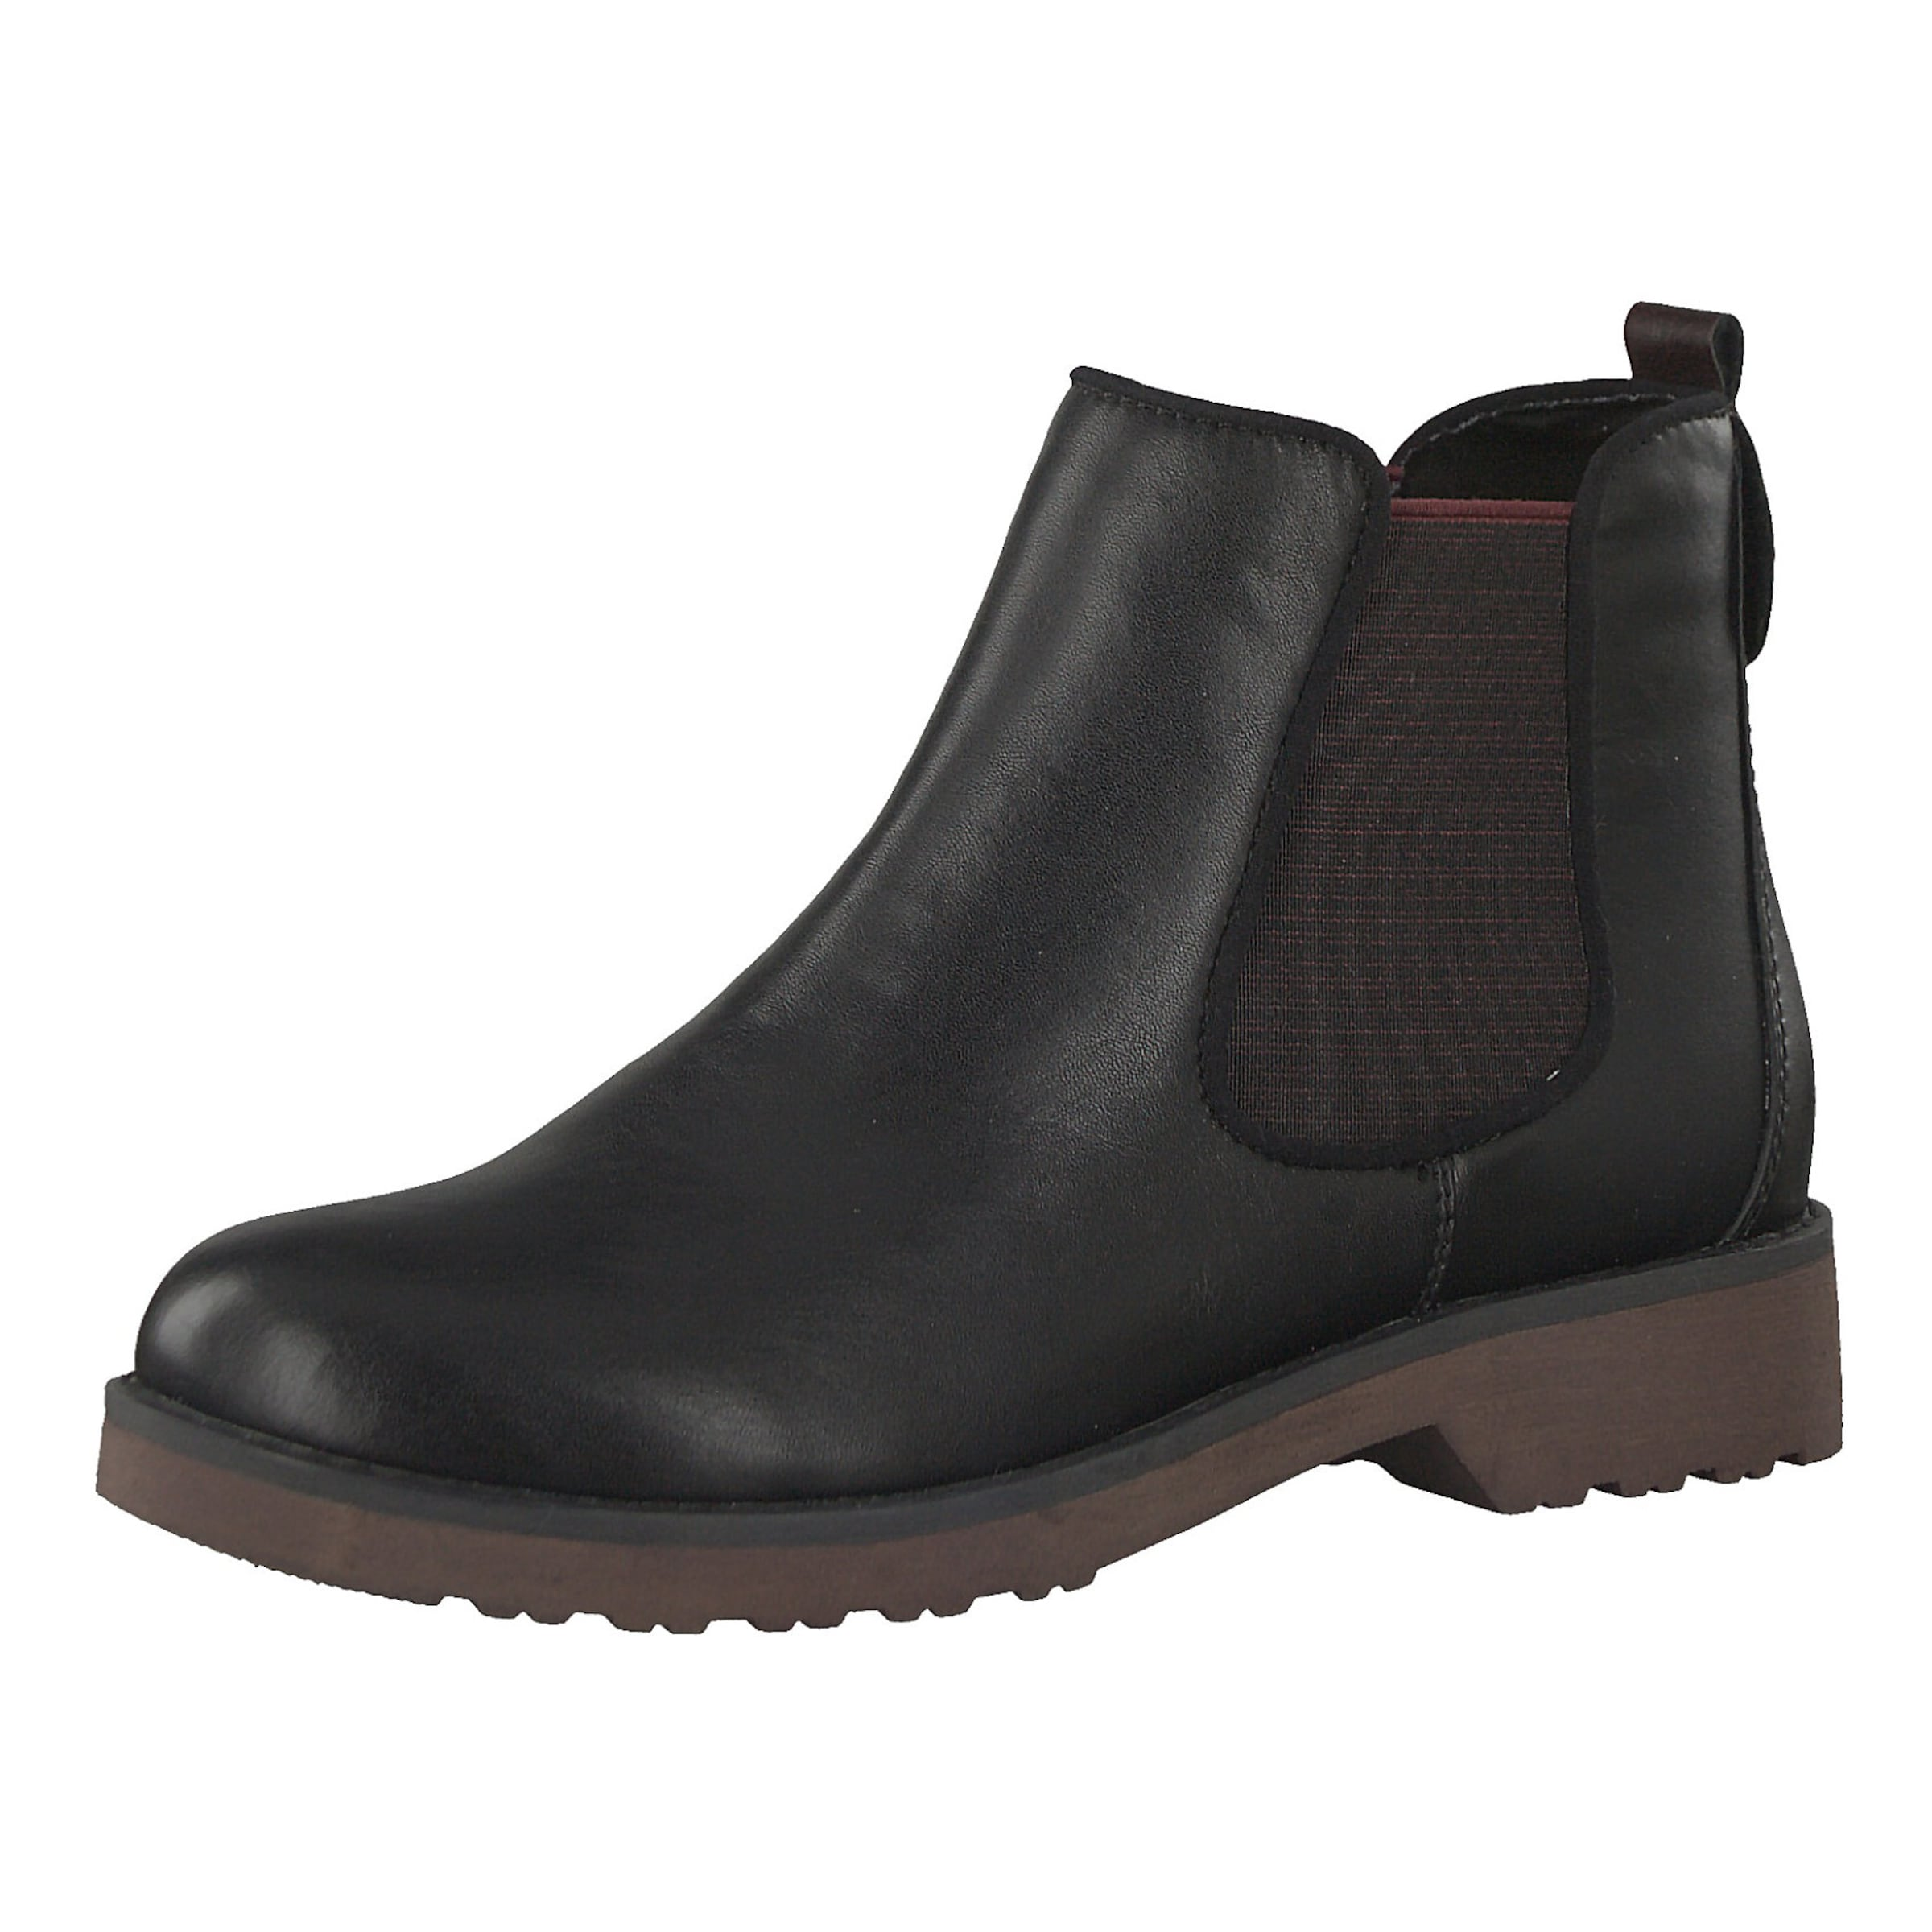 In Marco Schwarz Tozzi 'feel' Boots LUVjSGqpzM